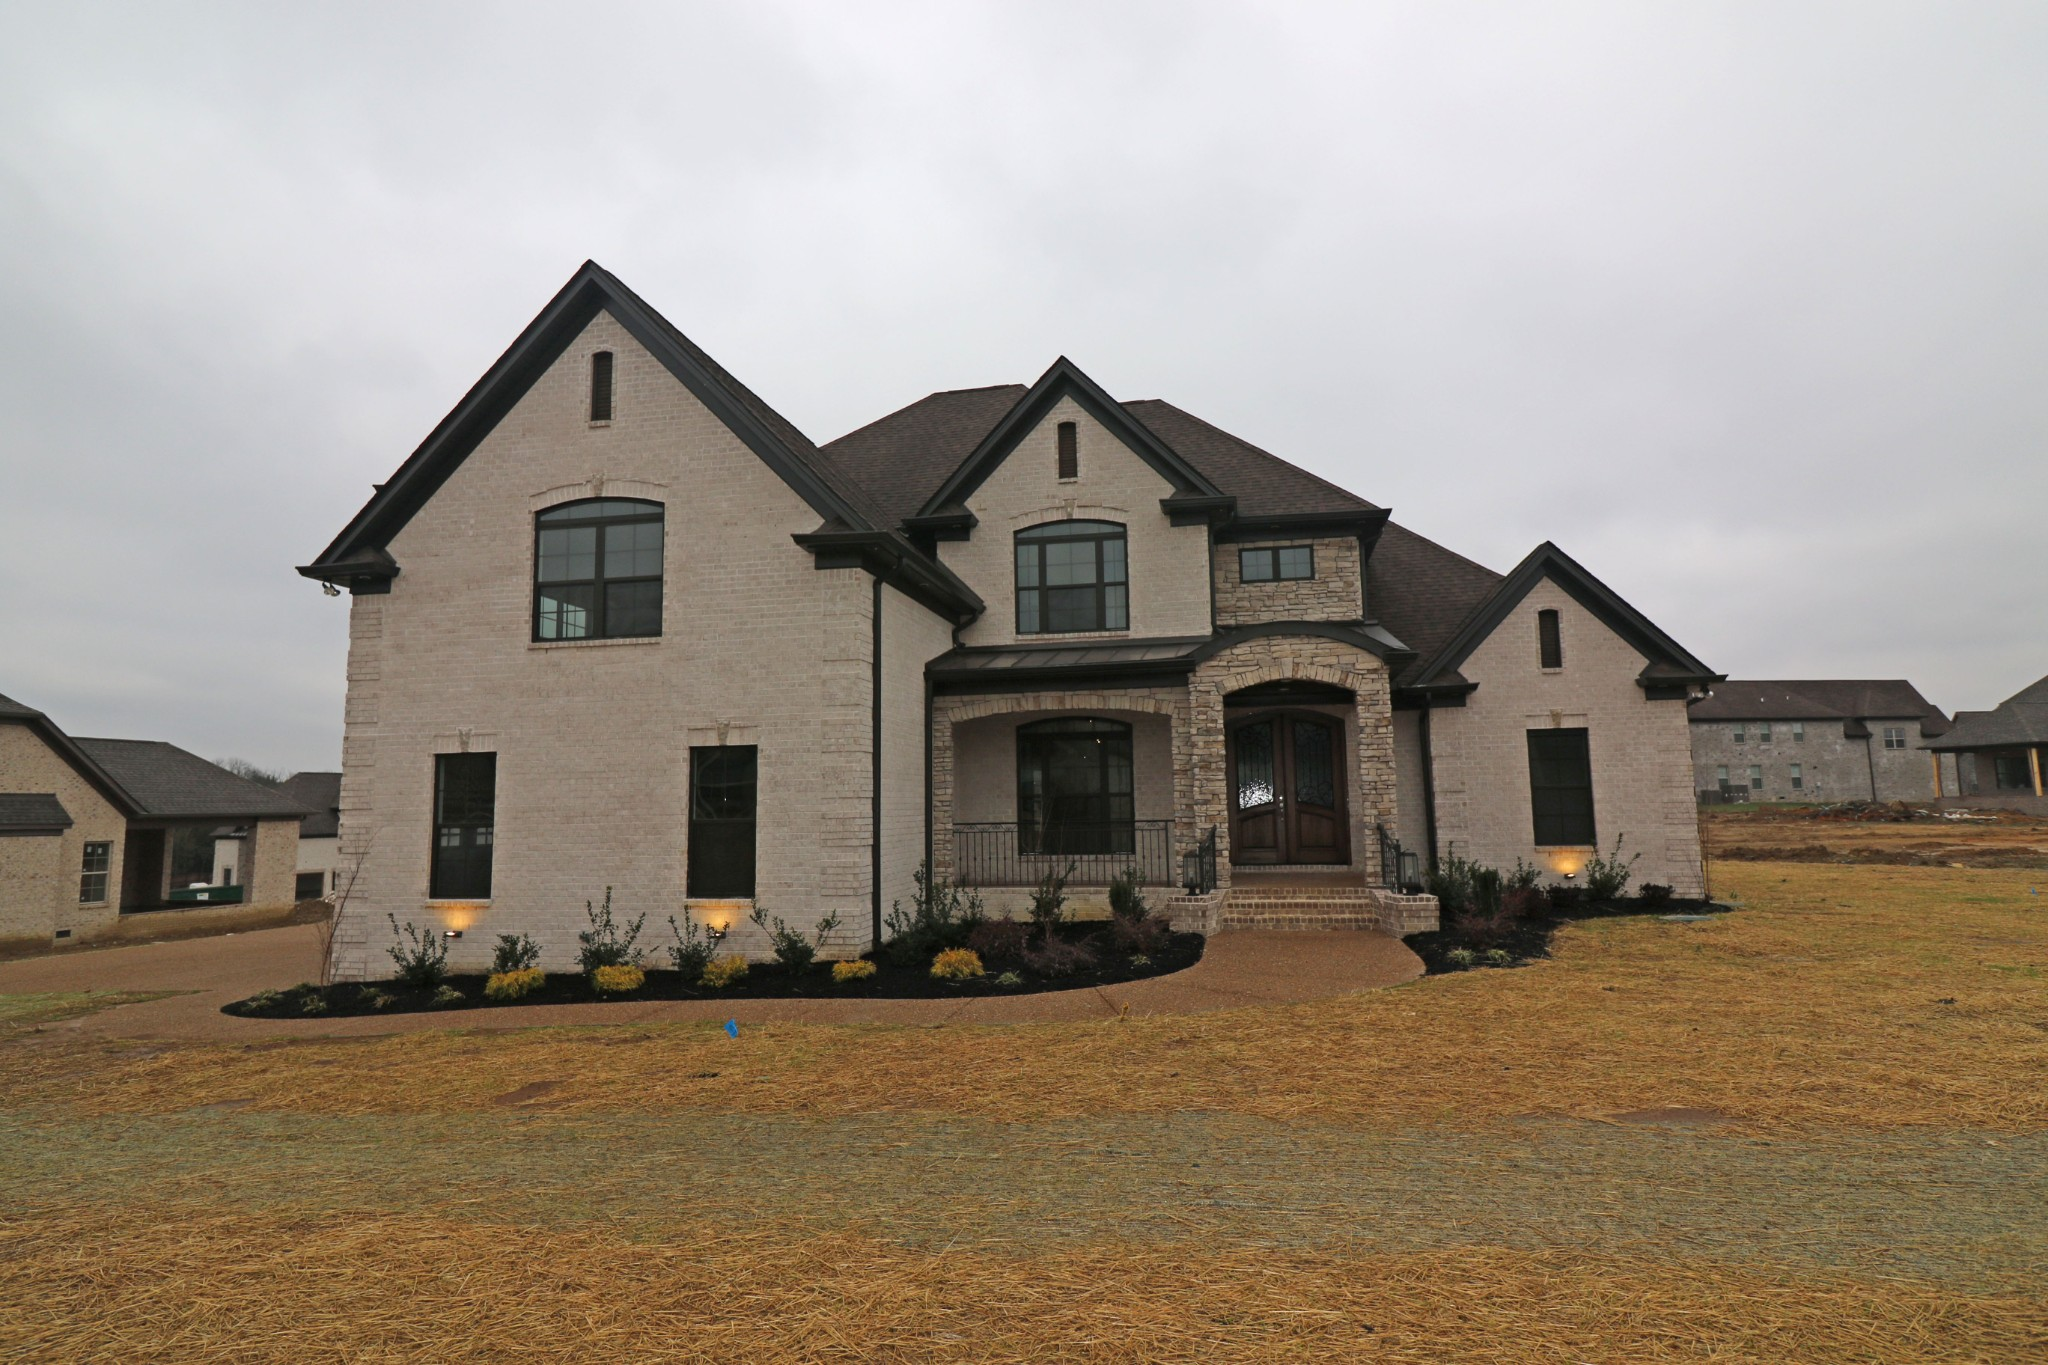 $699,900 - 4Br/4Ba -  for Sale in Wright Farms Sec. 5a, Mount Juliet